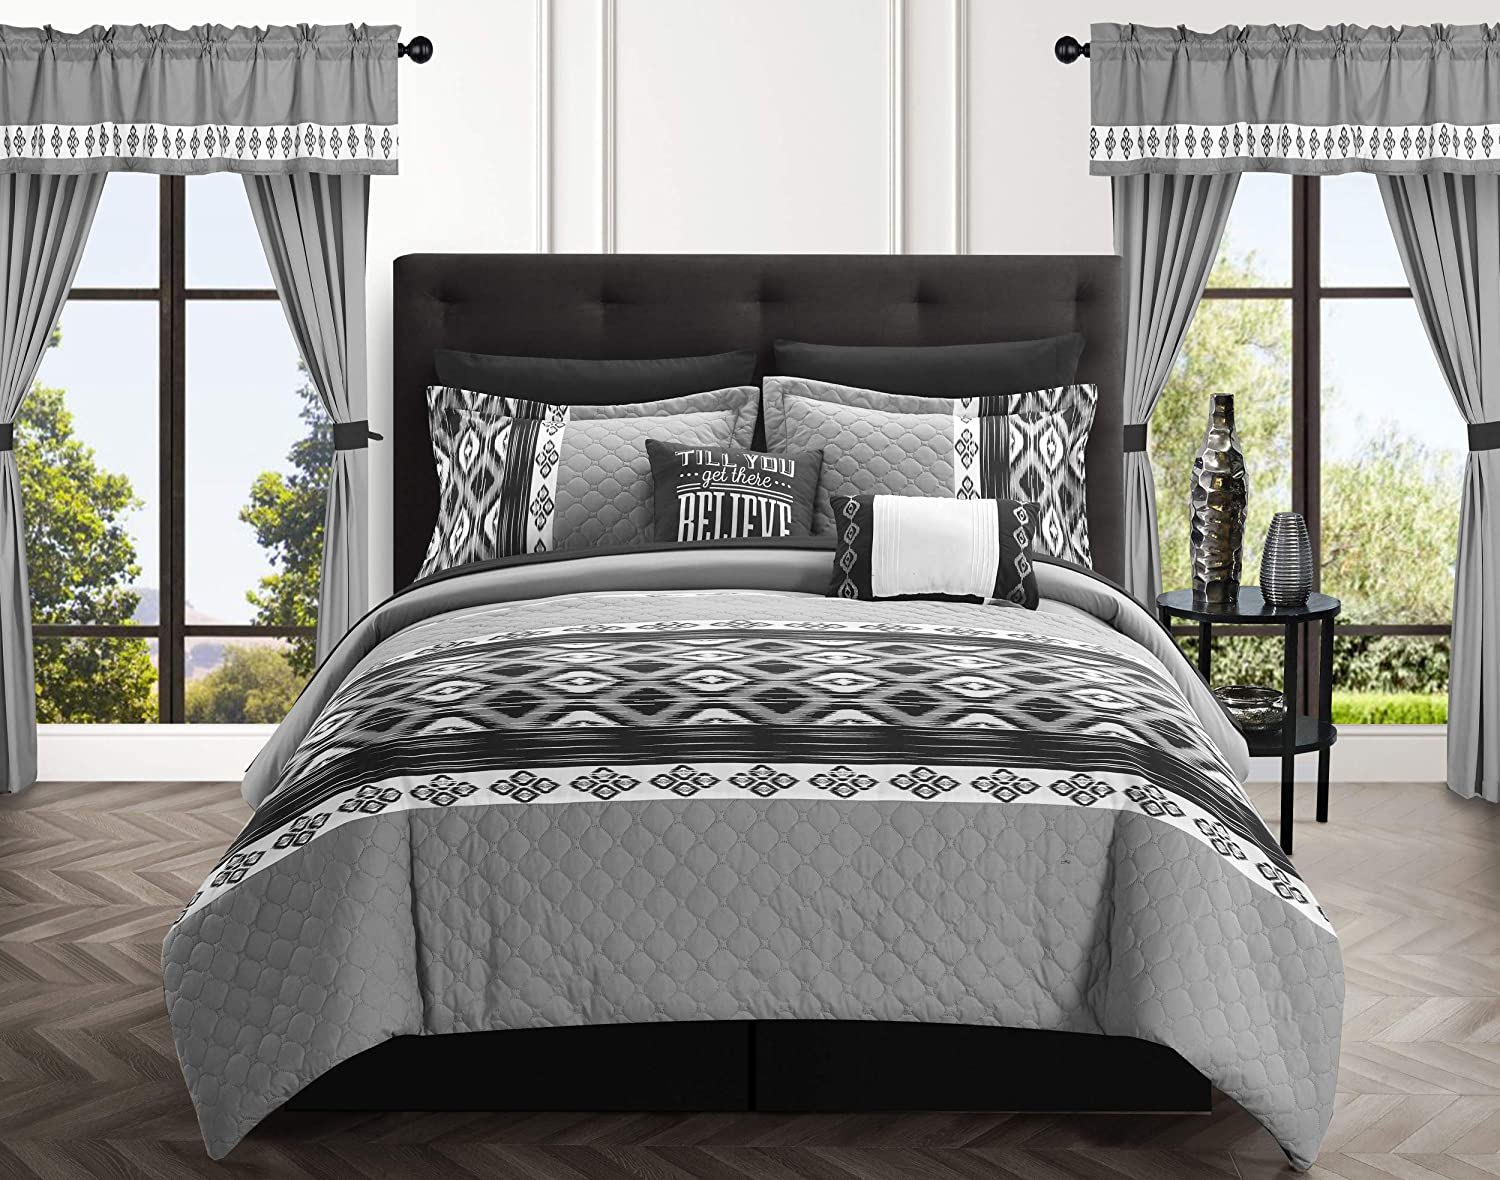 Chic Home Safforn 20 Piece Comforter Set Color Block Geometric Ikat Embroidered Bag Bedding-Sheets Pillowcases Window Treatments Decorative Pillows Shams Included, Queen, Black